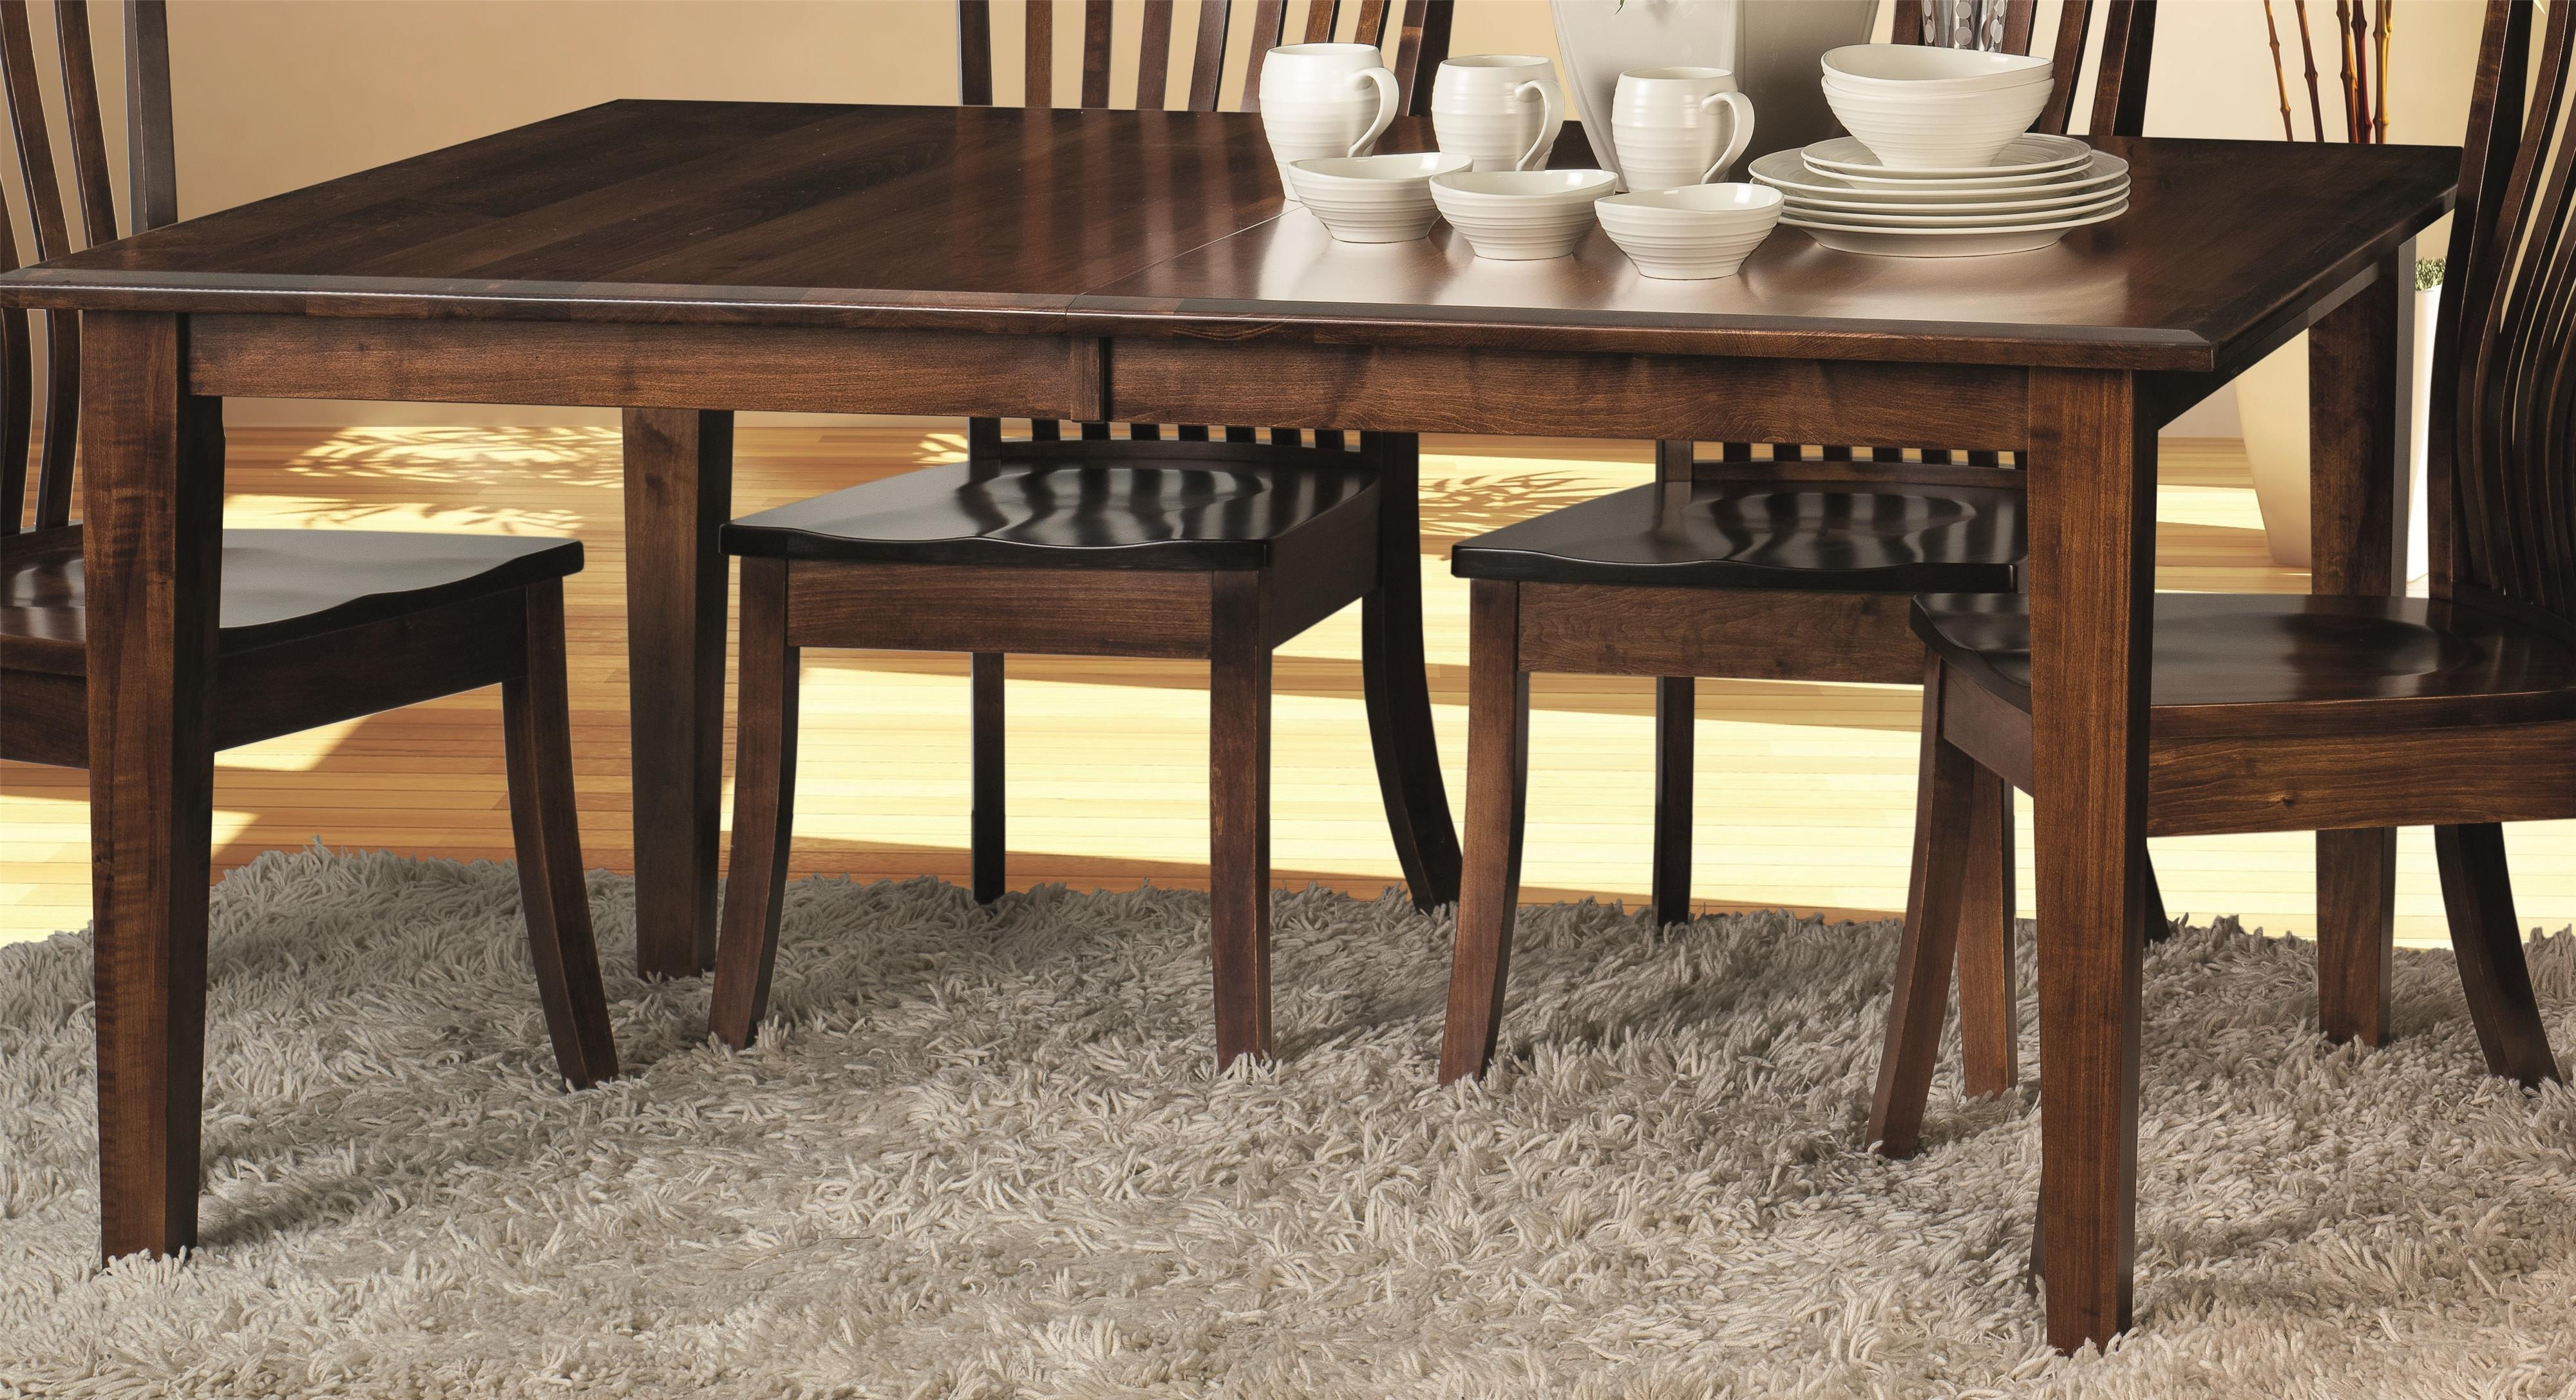 Classic Classic Dining Table Top & Base by Amish Impressions by Fusion Designs at Morris Home